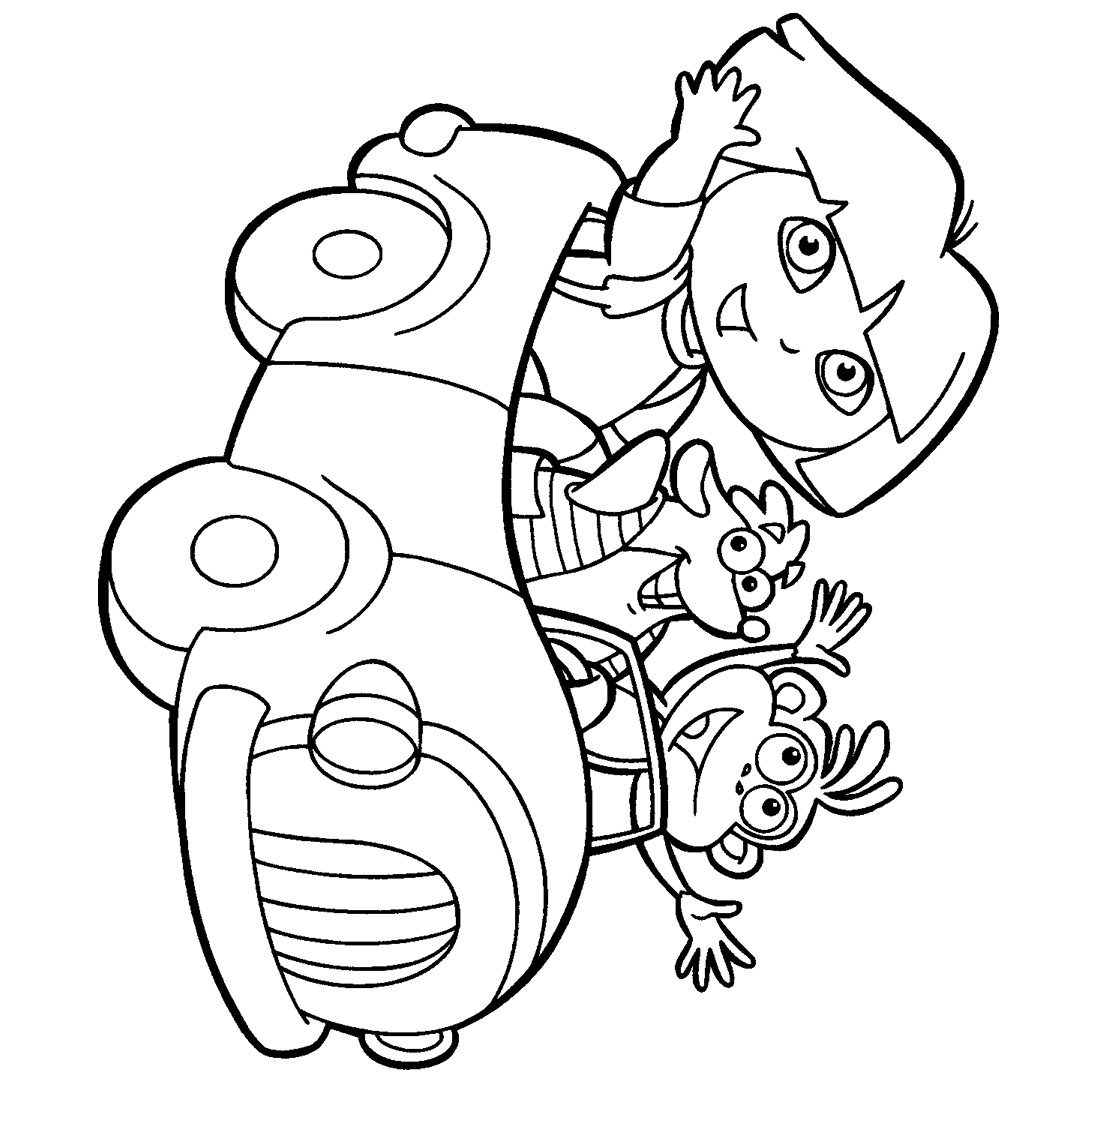 Dora coloring pages for kids become one of the cute figures to